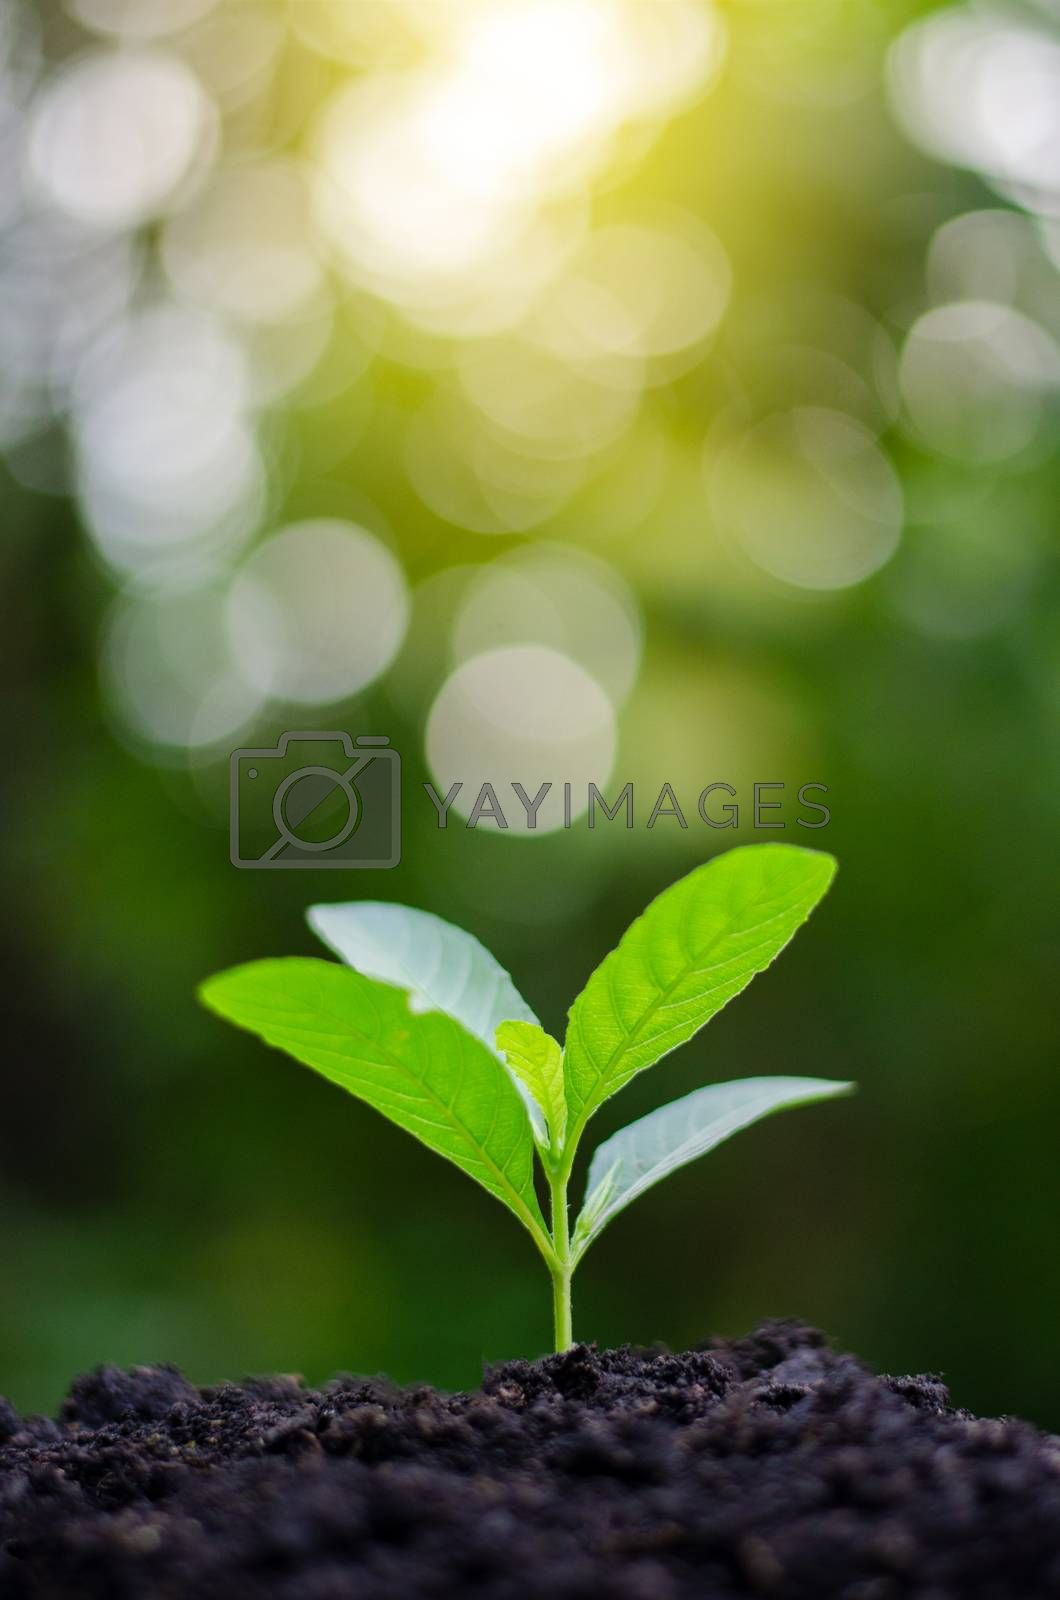 Planting seedlings young plant in the morning light on nature background by Sarayut